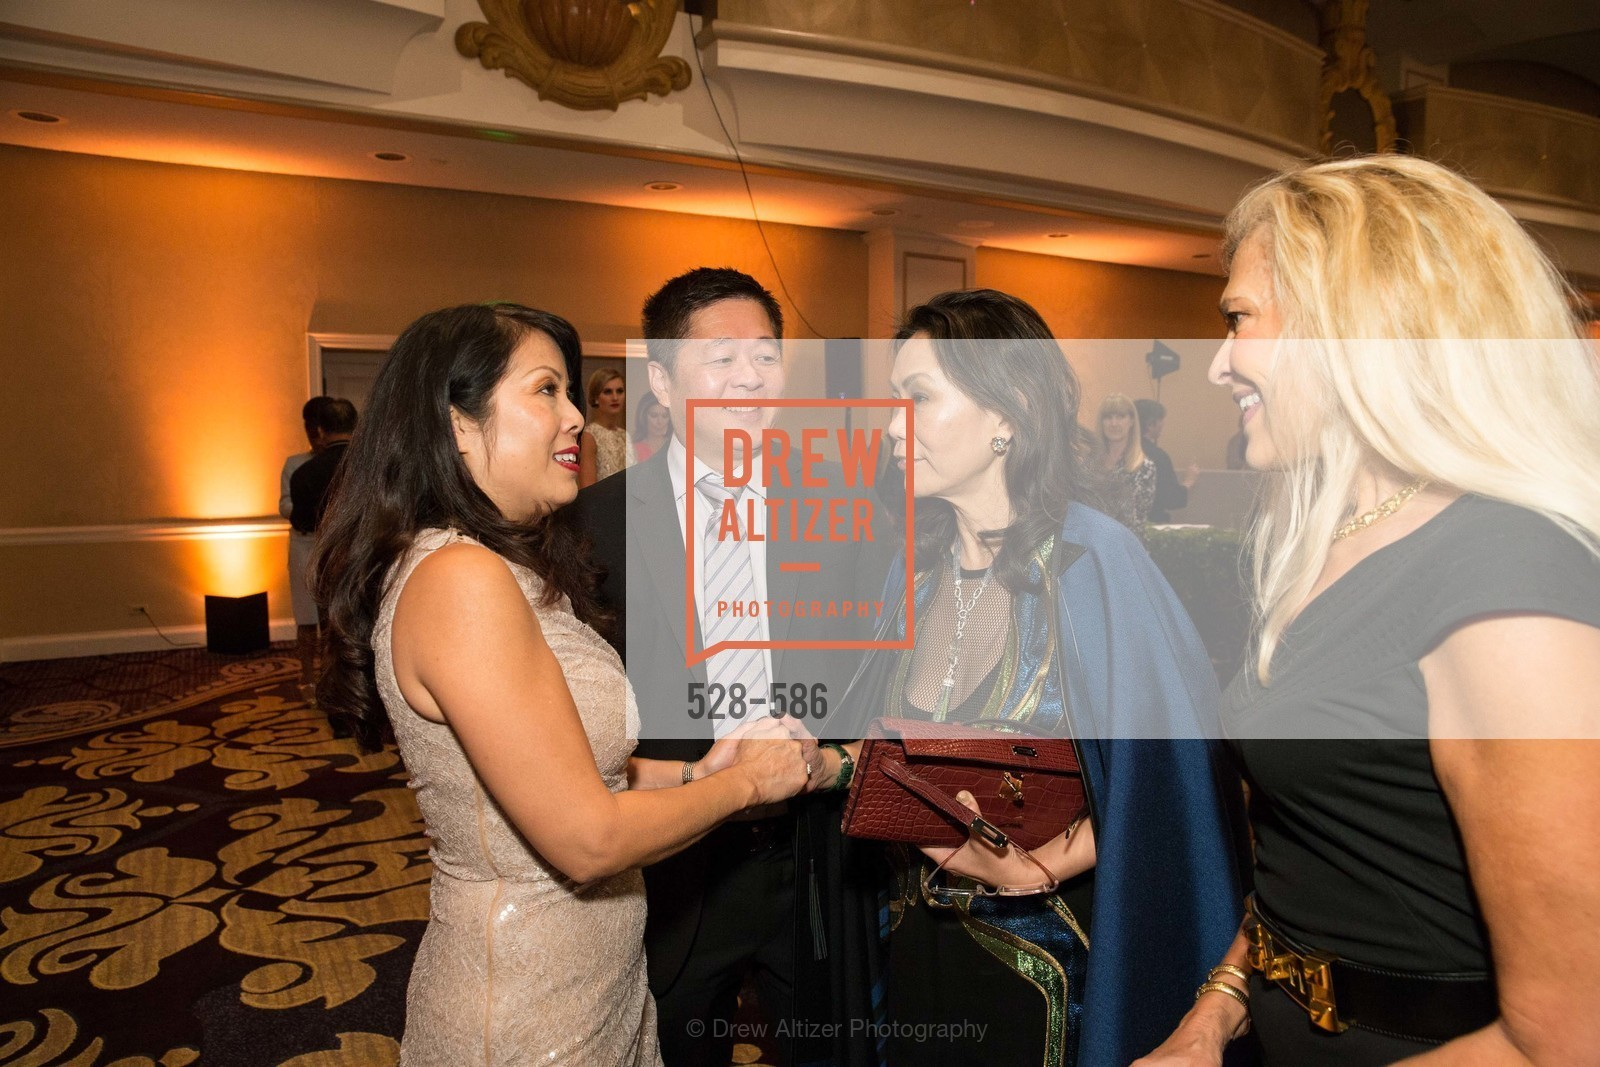 Sharon Seto, David Seto, Xiaojun Lee, Suzanna Jackson, 2014 Bay Area ARTHRITIS AUXILLIARY Benefit & Fashion Show, US, October 1st, 2014,Drew Altizer, Drew Altizer Photography, full-service agency, private events, San Francisco photographer, photographer california